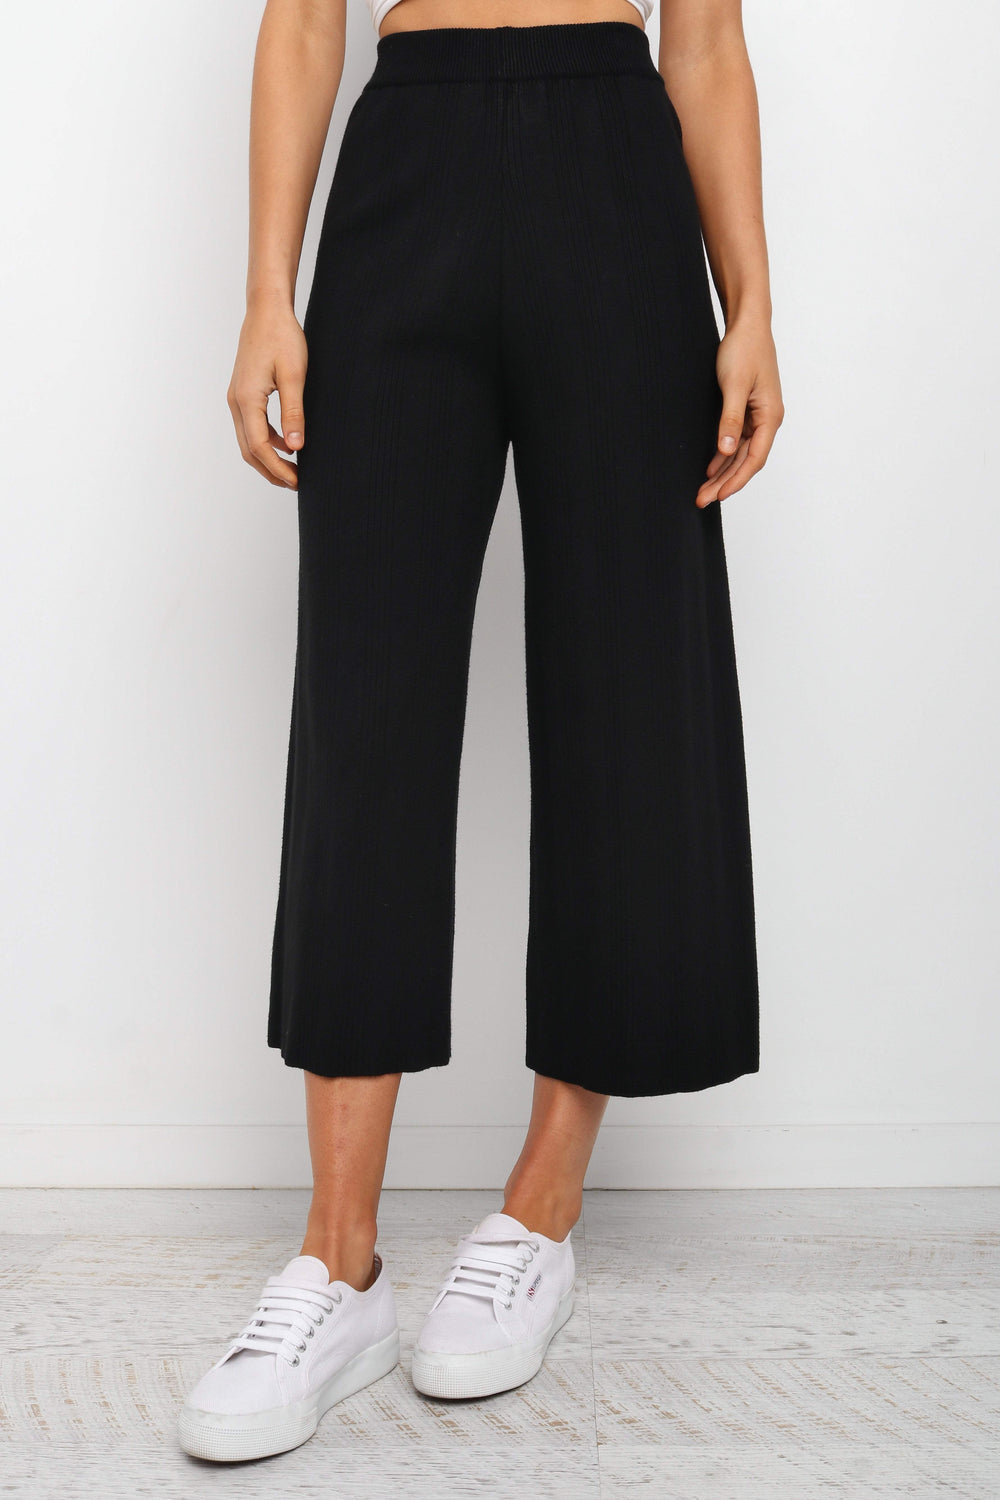 BOTTOMS ***Barstow Pant - Black